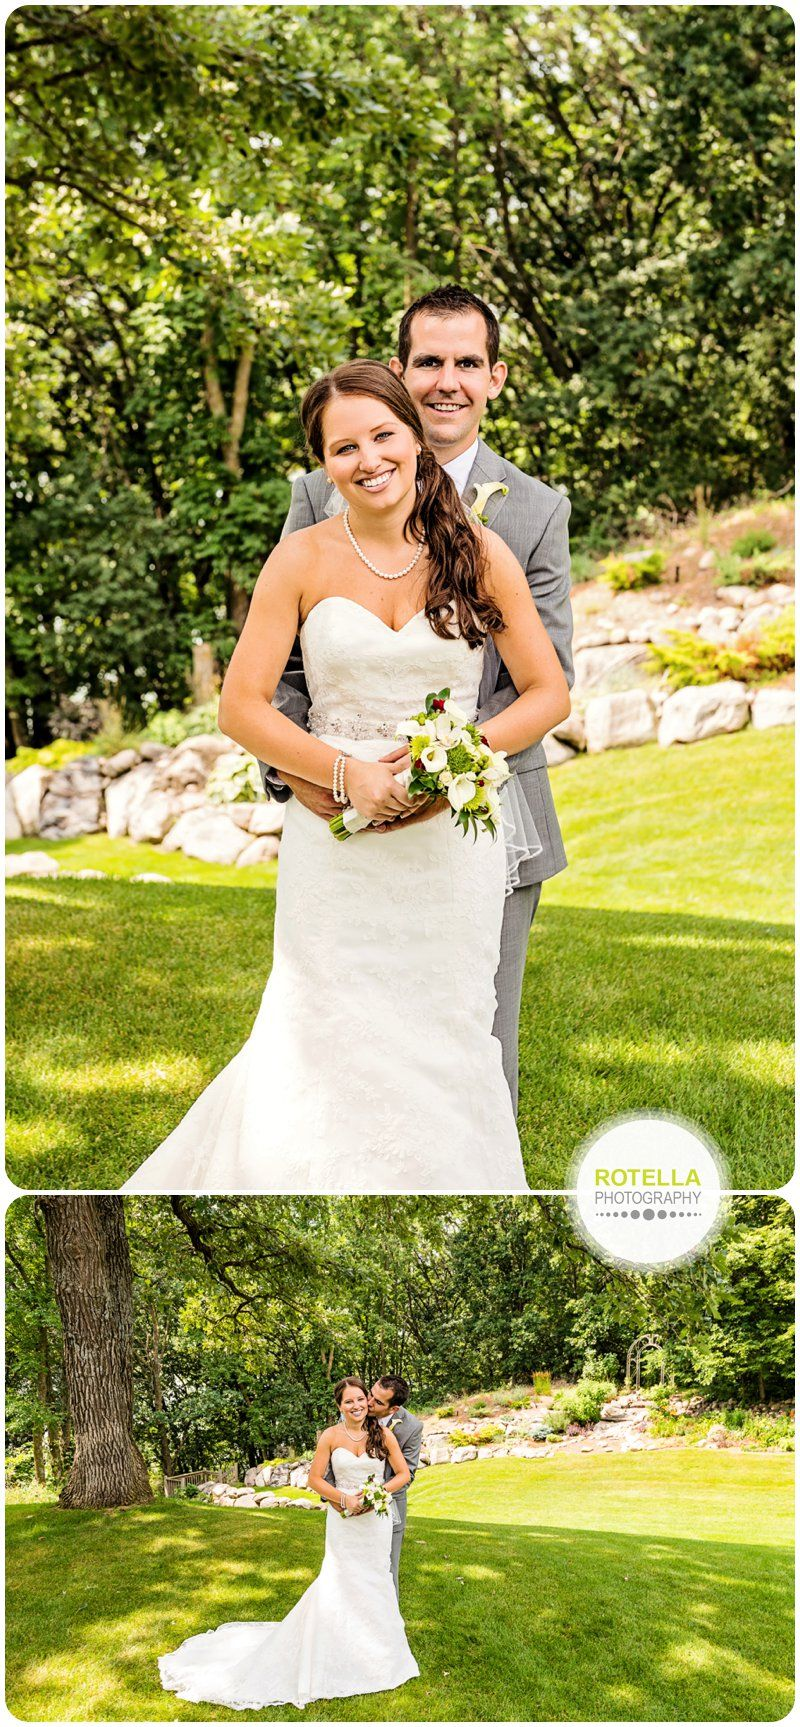 Minnesota Wedding Photography - Jack and Chelsey - Formal Portraits